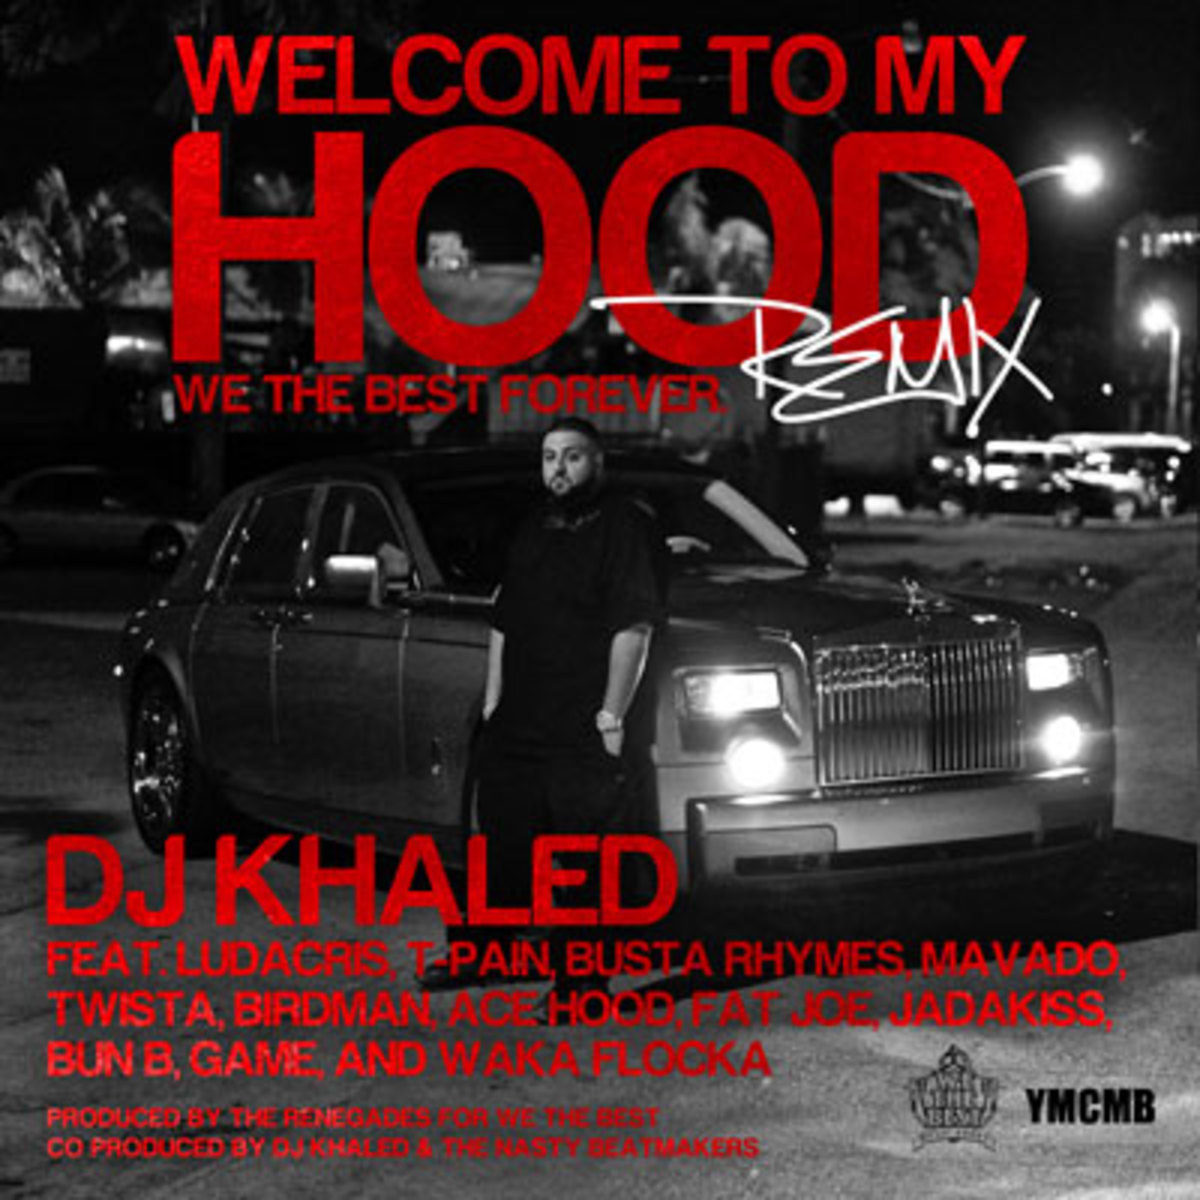 khaled-welcometomyhoodrmx.jpg